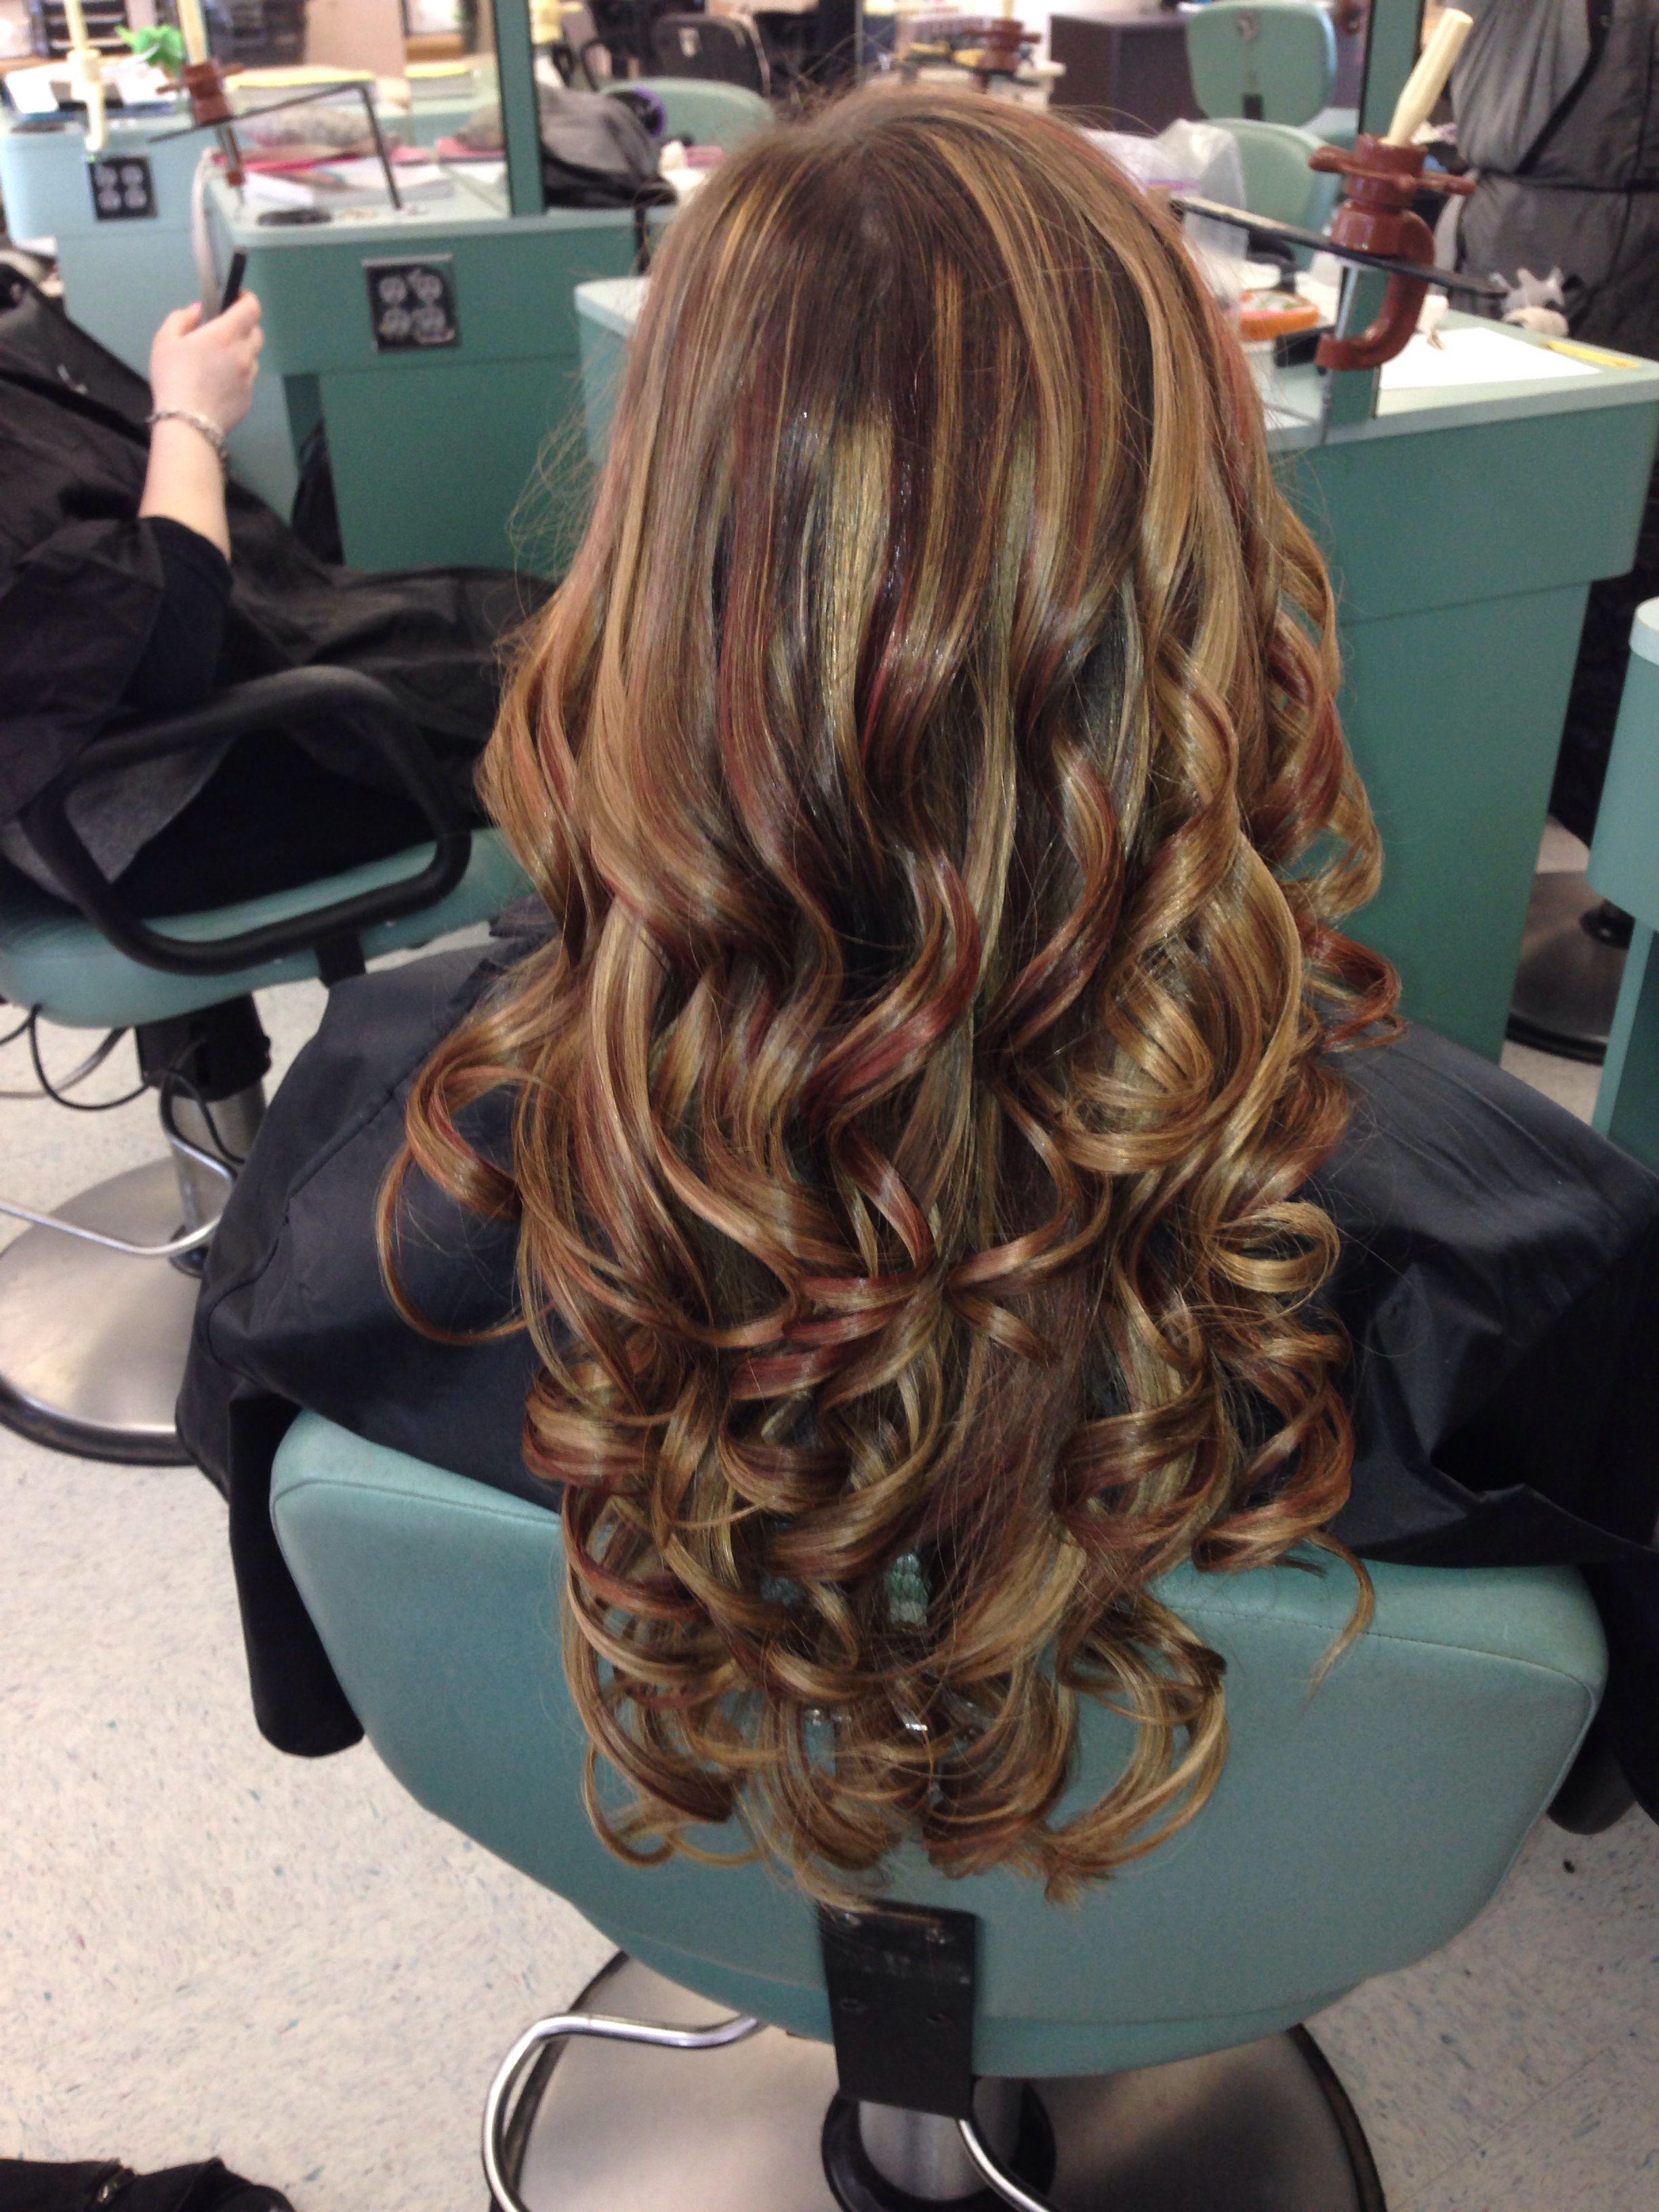 Curled Hair With Blonde And Red Highlights And Brown Low